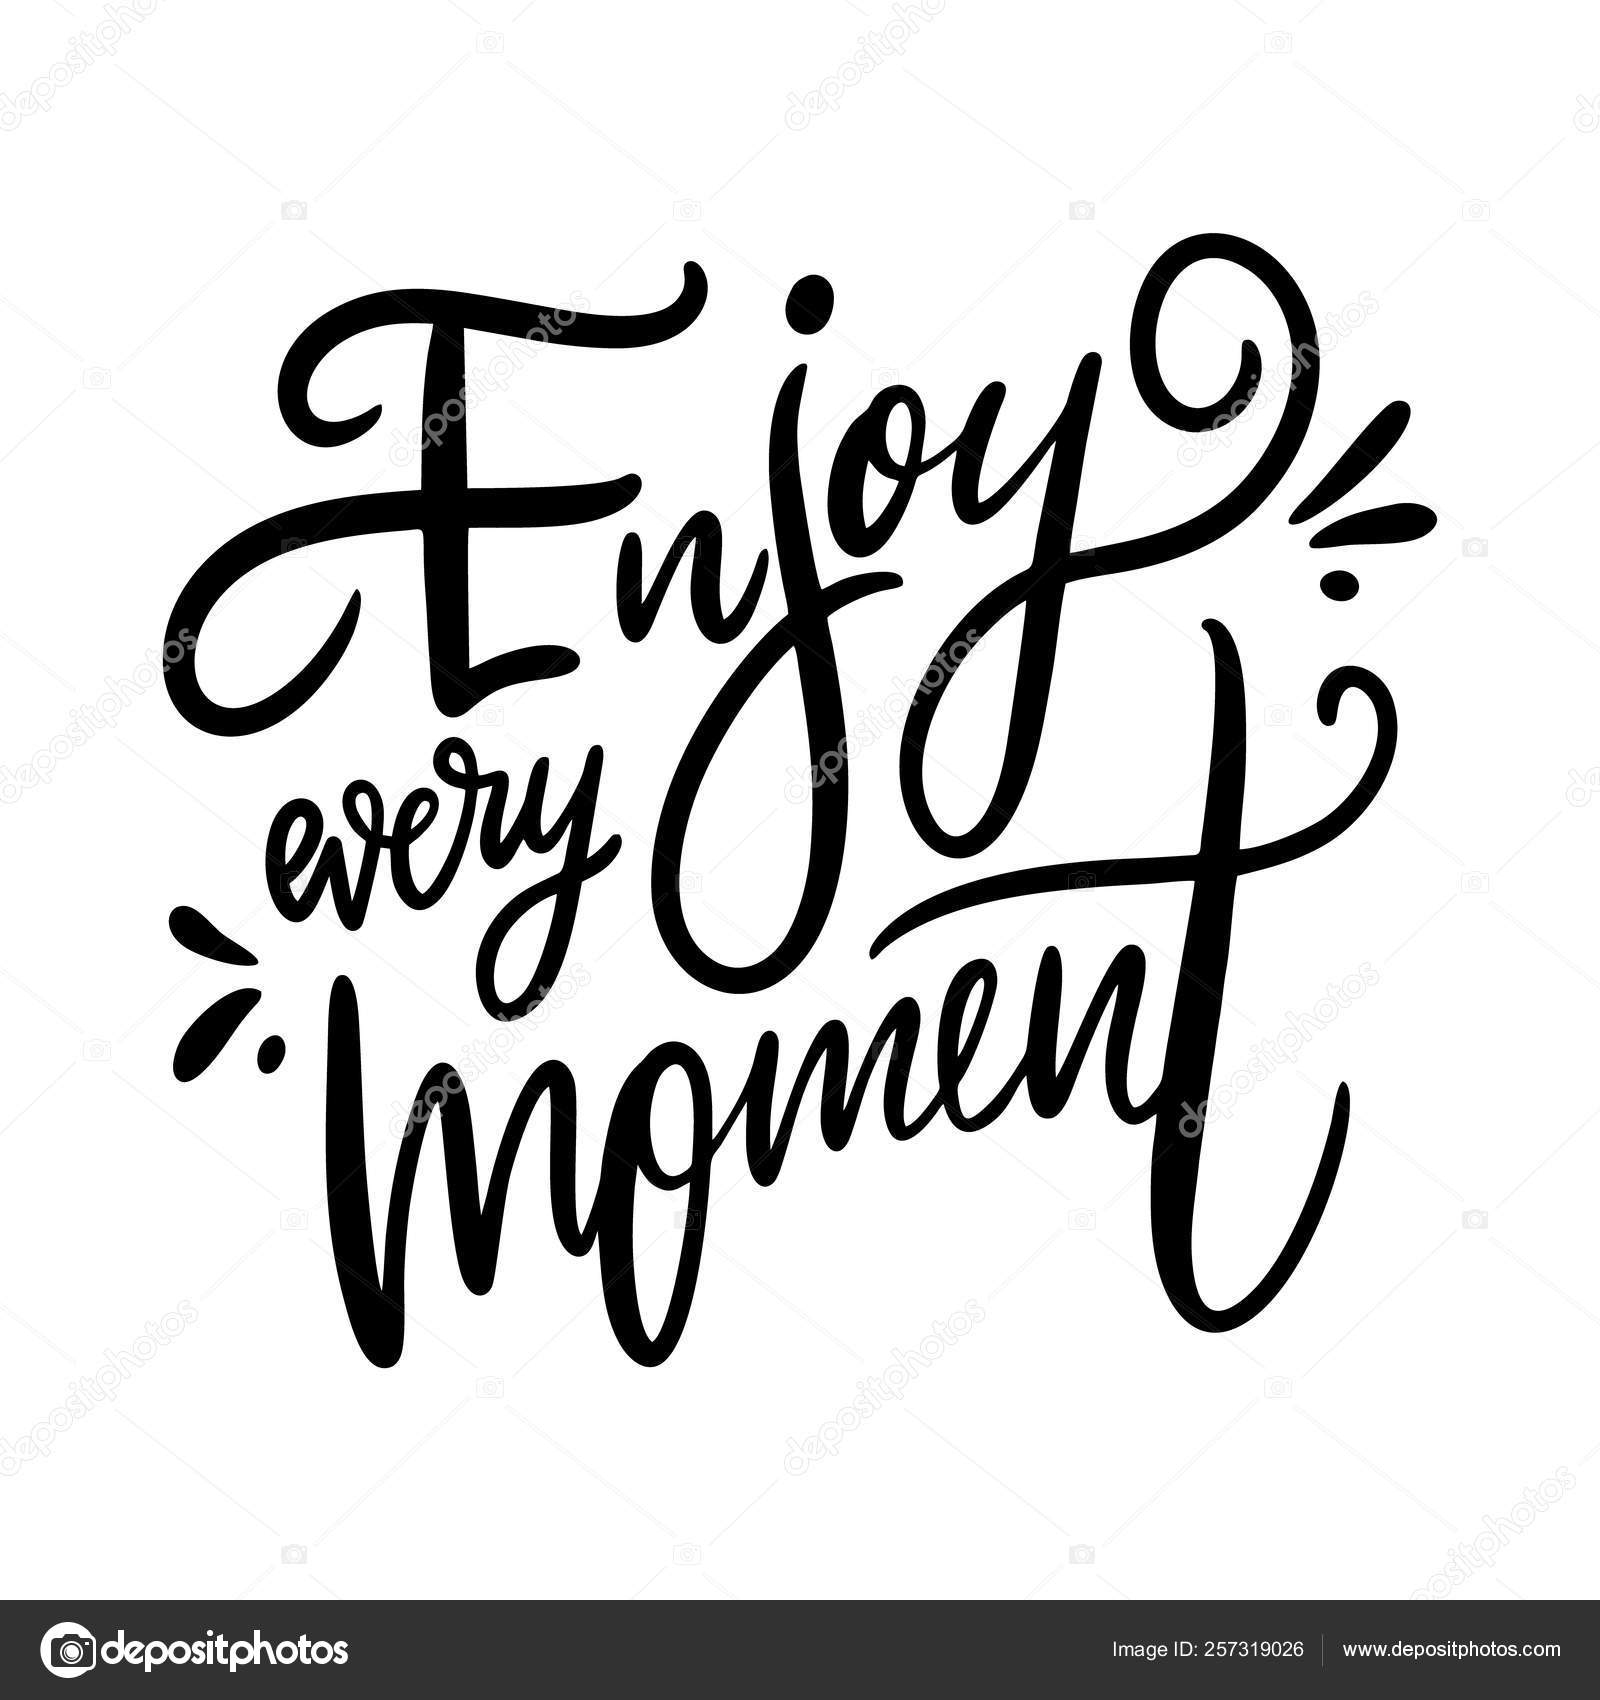 Enjoy every moment Hand drawn vector lettering